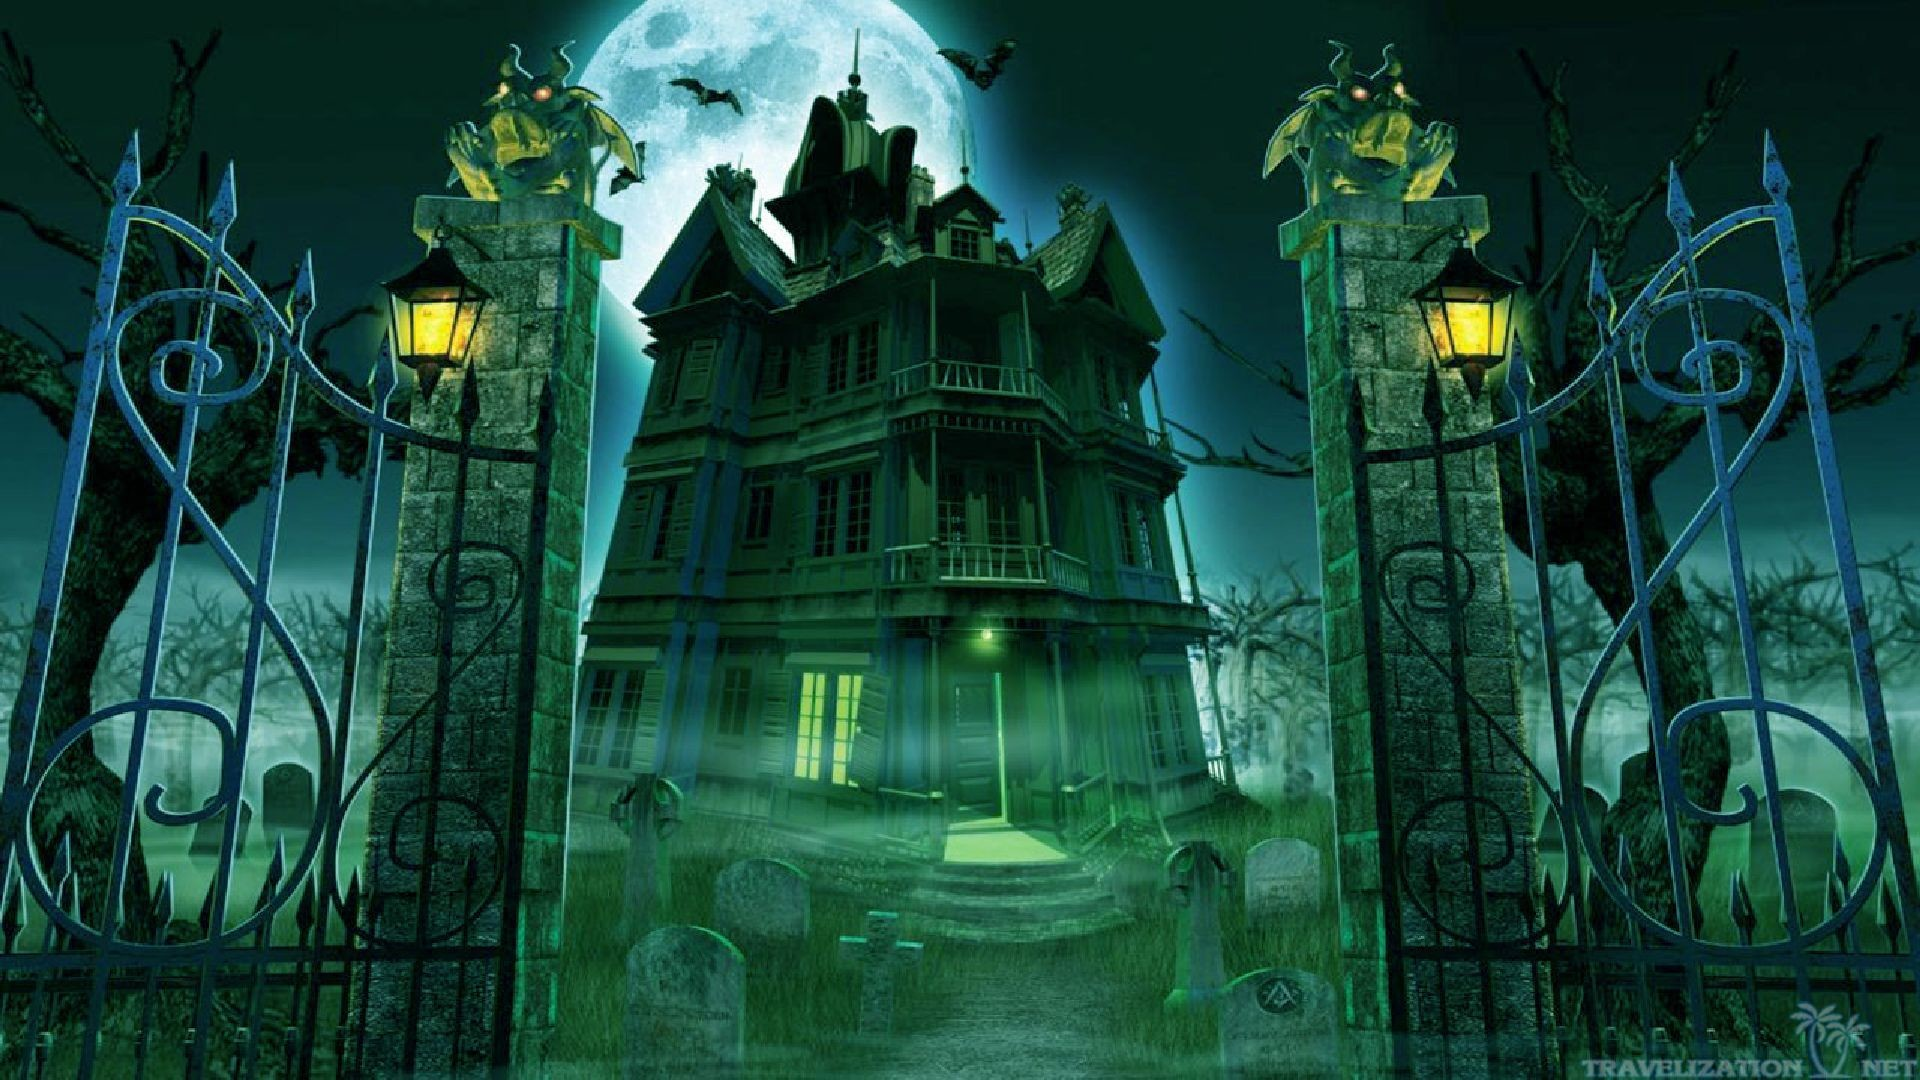 Creepy graveyard wallpaper 64 images - Scary halloween screensavers animated ...